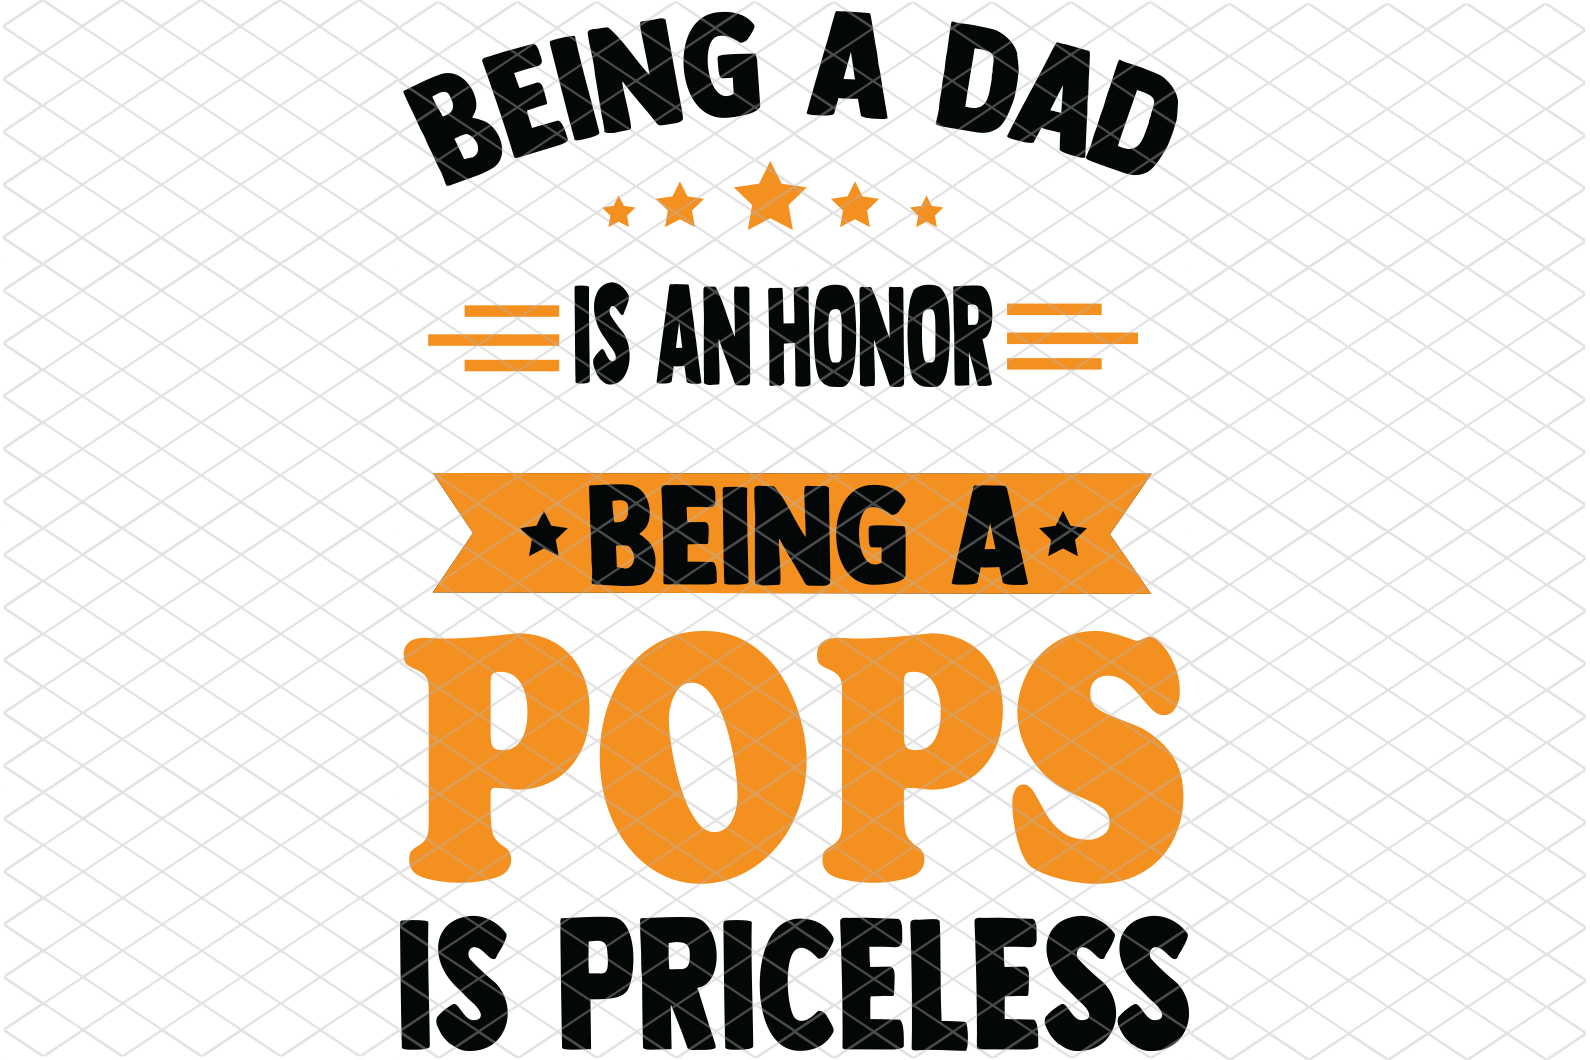 Being a dad is an honor being a pops is priceless , papa svg, baba svg,father's day svg, father svg, dad svg, daddy svg, poppop svg Files For Silhouette, Files For Cricut, SVG, DXF, EPS, PNG, Instant Download